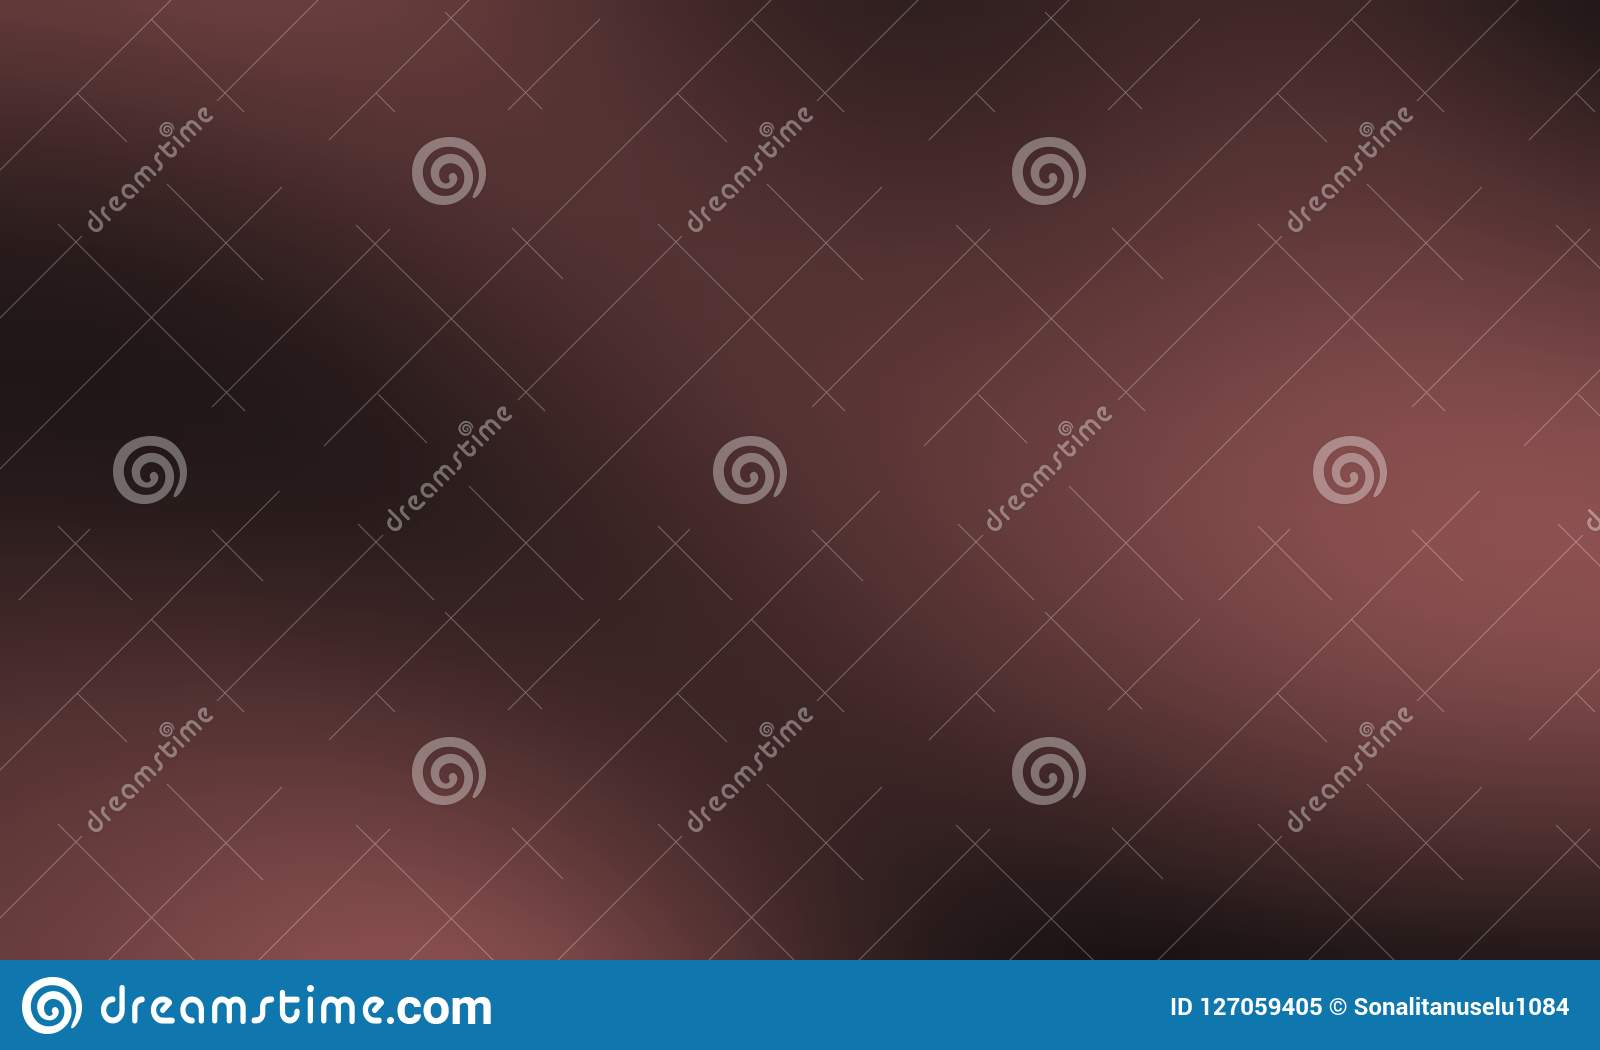 Brown blur abstract background.